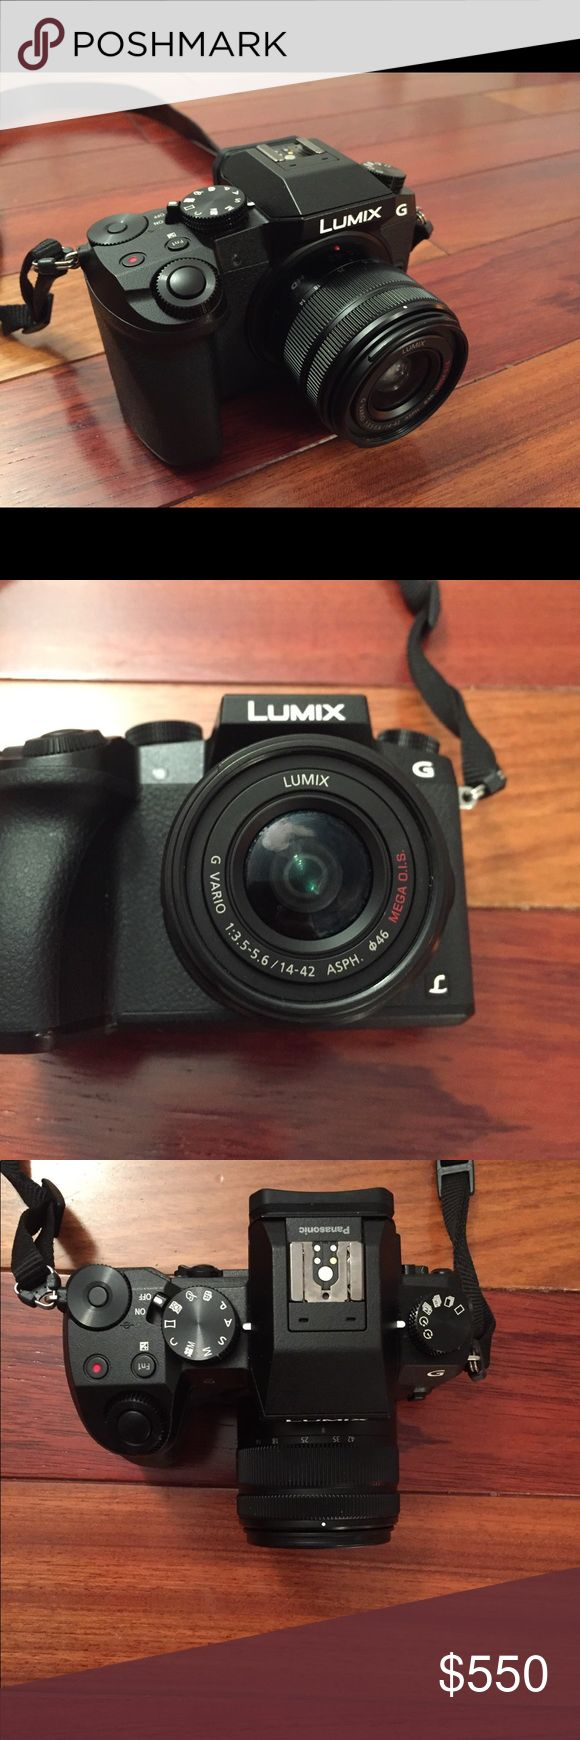 Panasonic Lumix G7 This camera has 4k capabilities for both photos and videos! It works great but I am not a professional photographer and don't use it to it's full capacity.  I will include an SD card and camera bag for a little extra Other